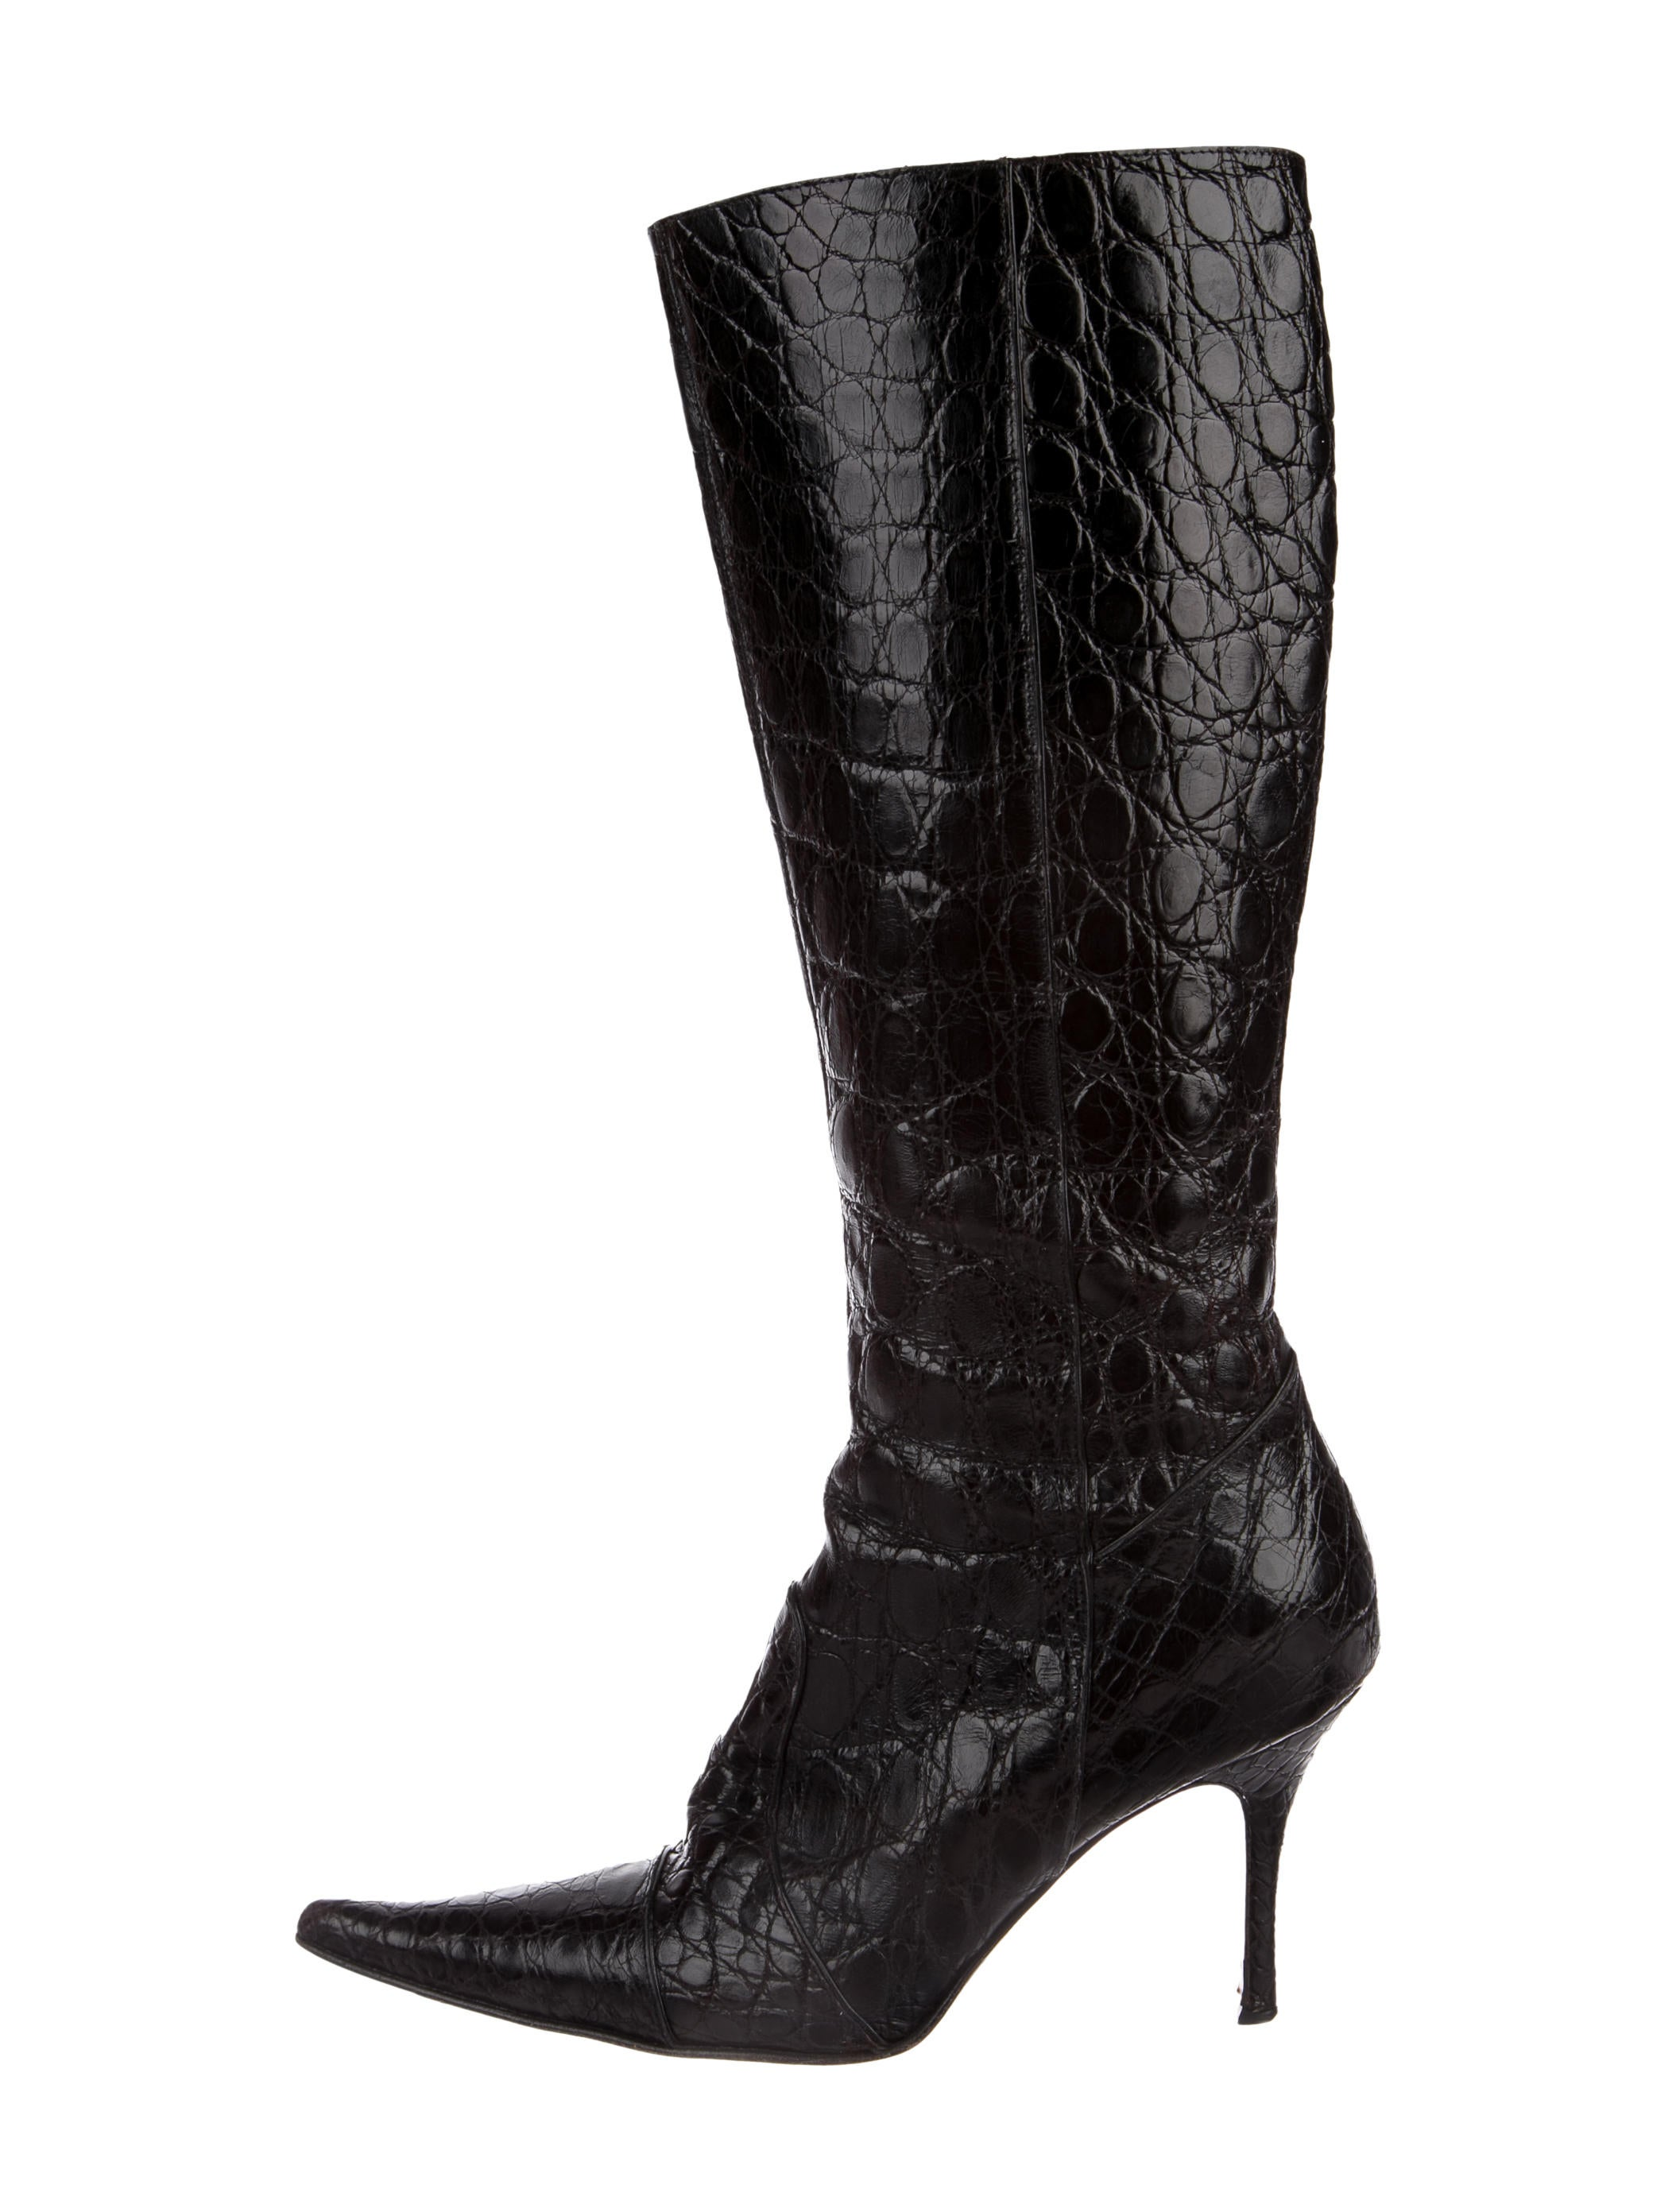 best seller buy cheap official Domenico Vacca Alligator Knee-High Boots Manchester release dates online KAaHido